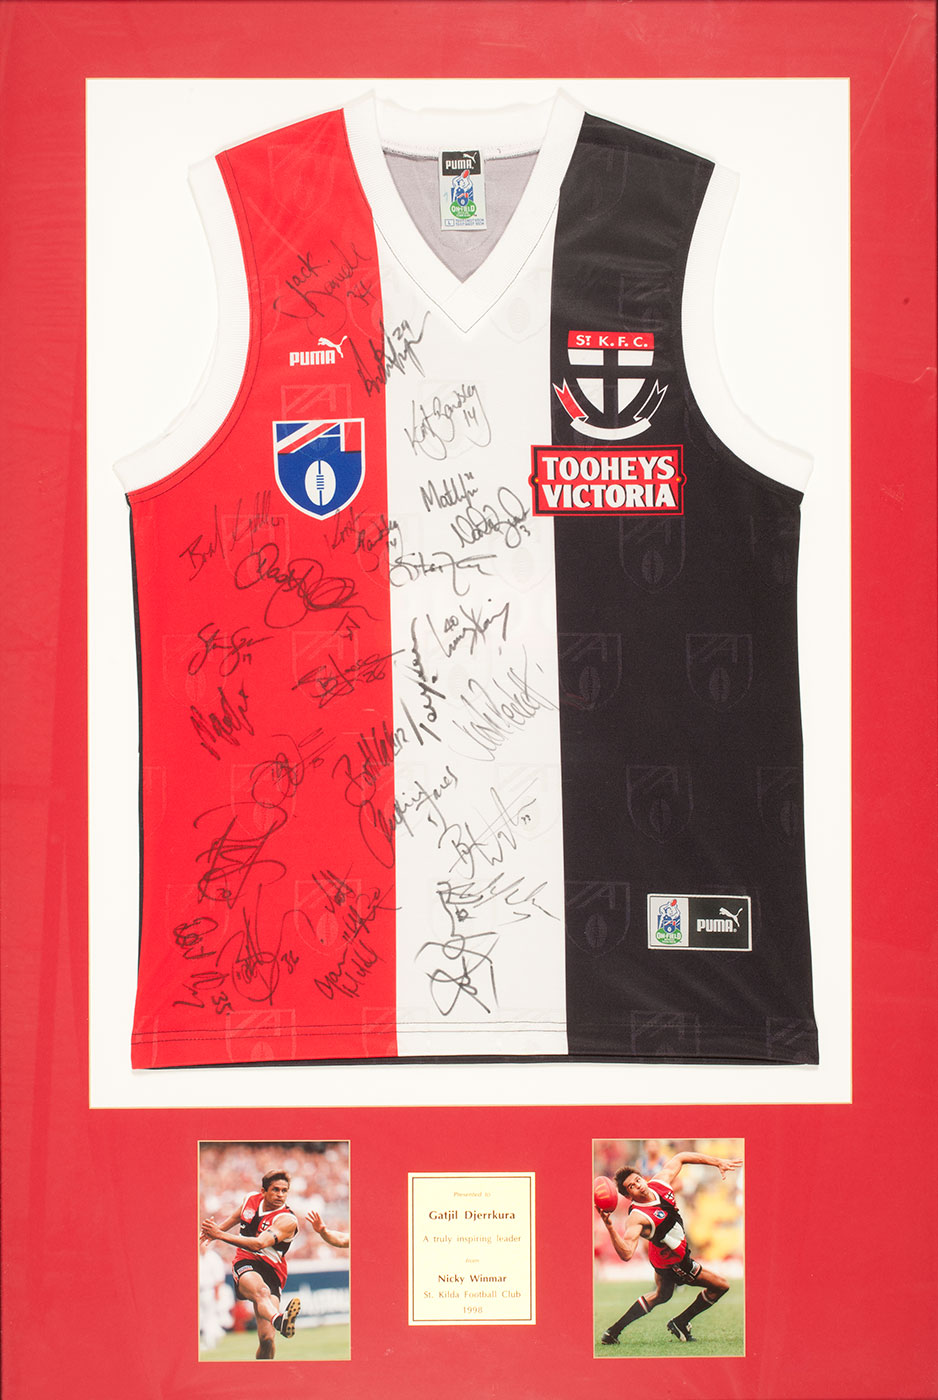 A framed red, white and black sleeveless top with V-neck and logos on both breasts. It has various signatures in black across the front. Two small colour photographs of a footballer in play appear underneath, with a central gold-coloured plaque which reads 'Presented to / Gatjil Djerrkura / A truly inspiring leader / from / Nicky Winmar / St Kilda Football Club / 1998'. - click to view larger image